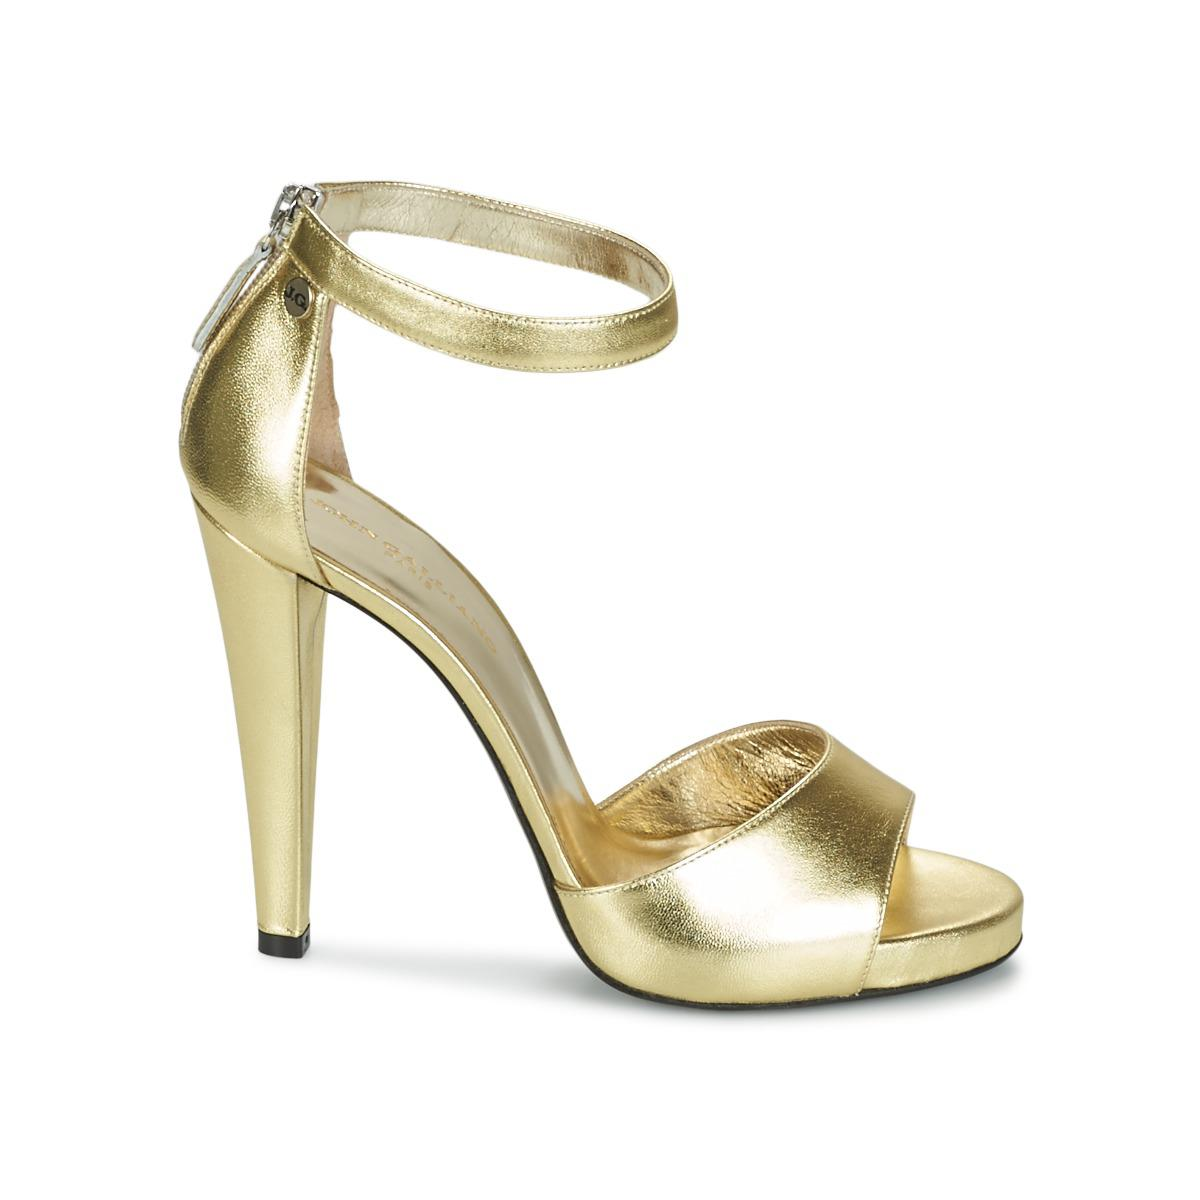 Shopping Online Many Kinds Of Cheap Price John Galliano 7995 women's Sandals in Footlocker For Sale Outlet Clearance Sale Limited Edition RW1Jt